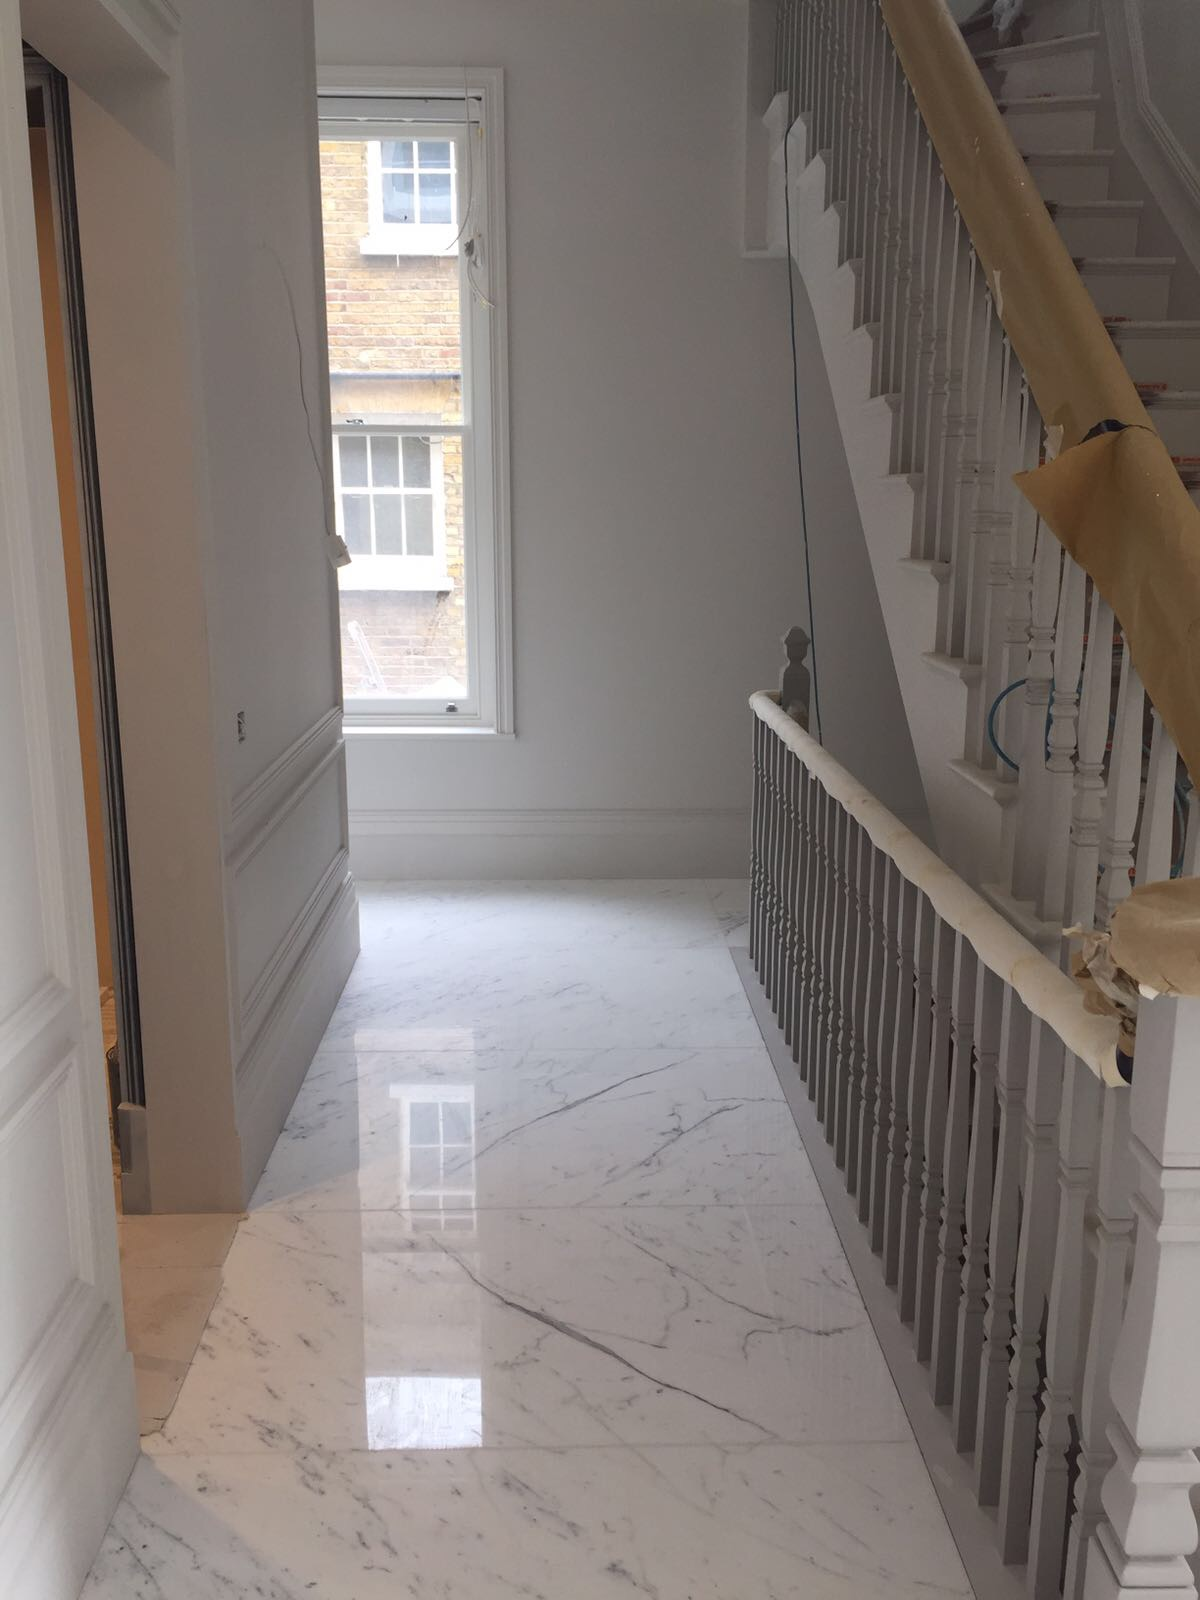 Statuario mable bookmatch flooring in London  (1)